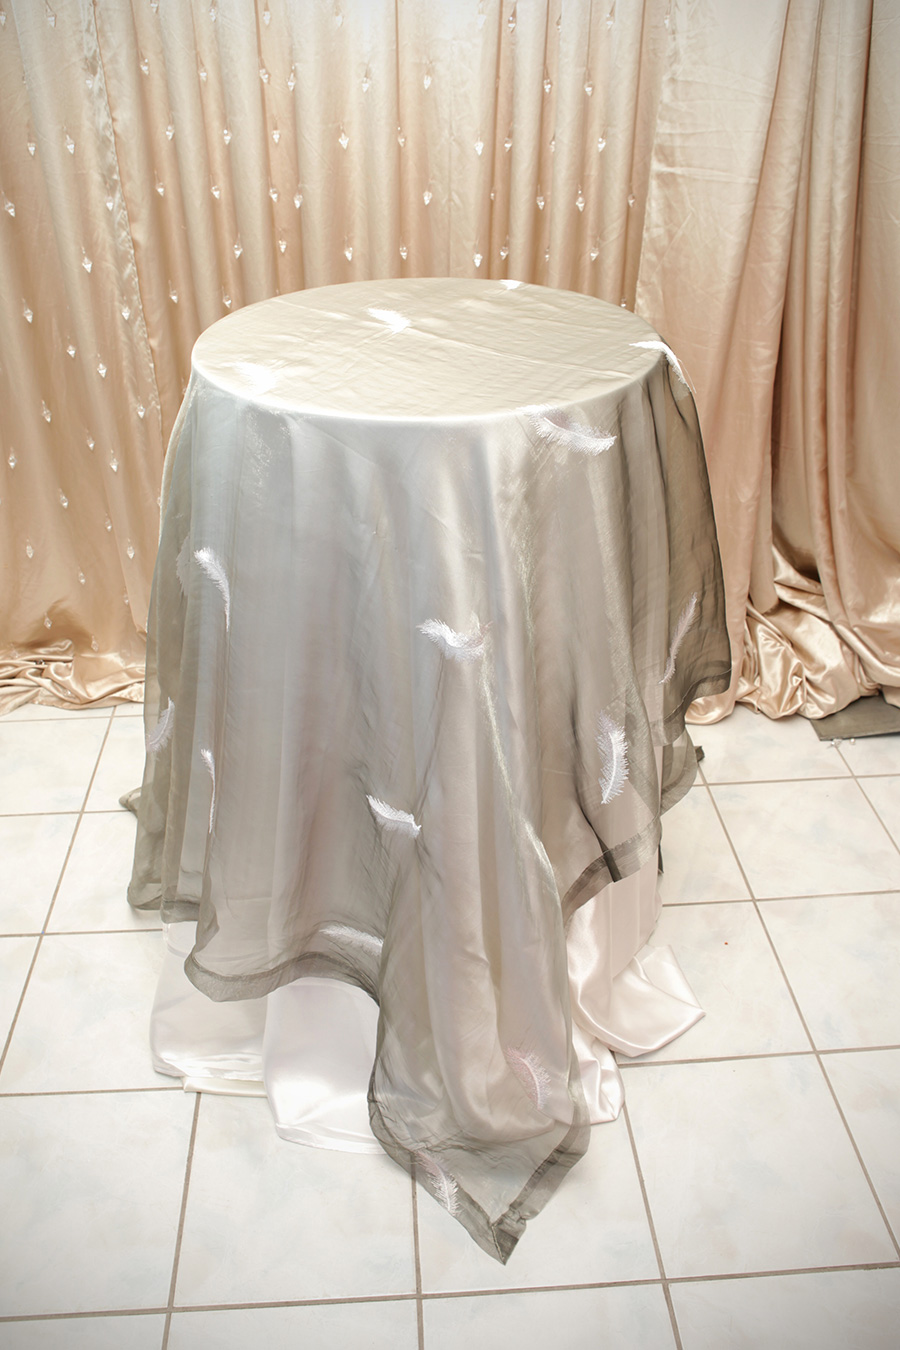 Sheer Overlay Table Cover Silver With Feathers